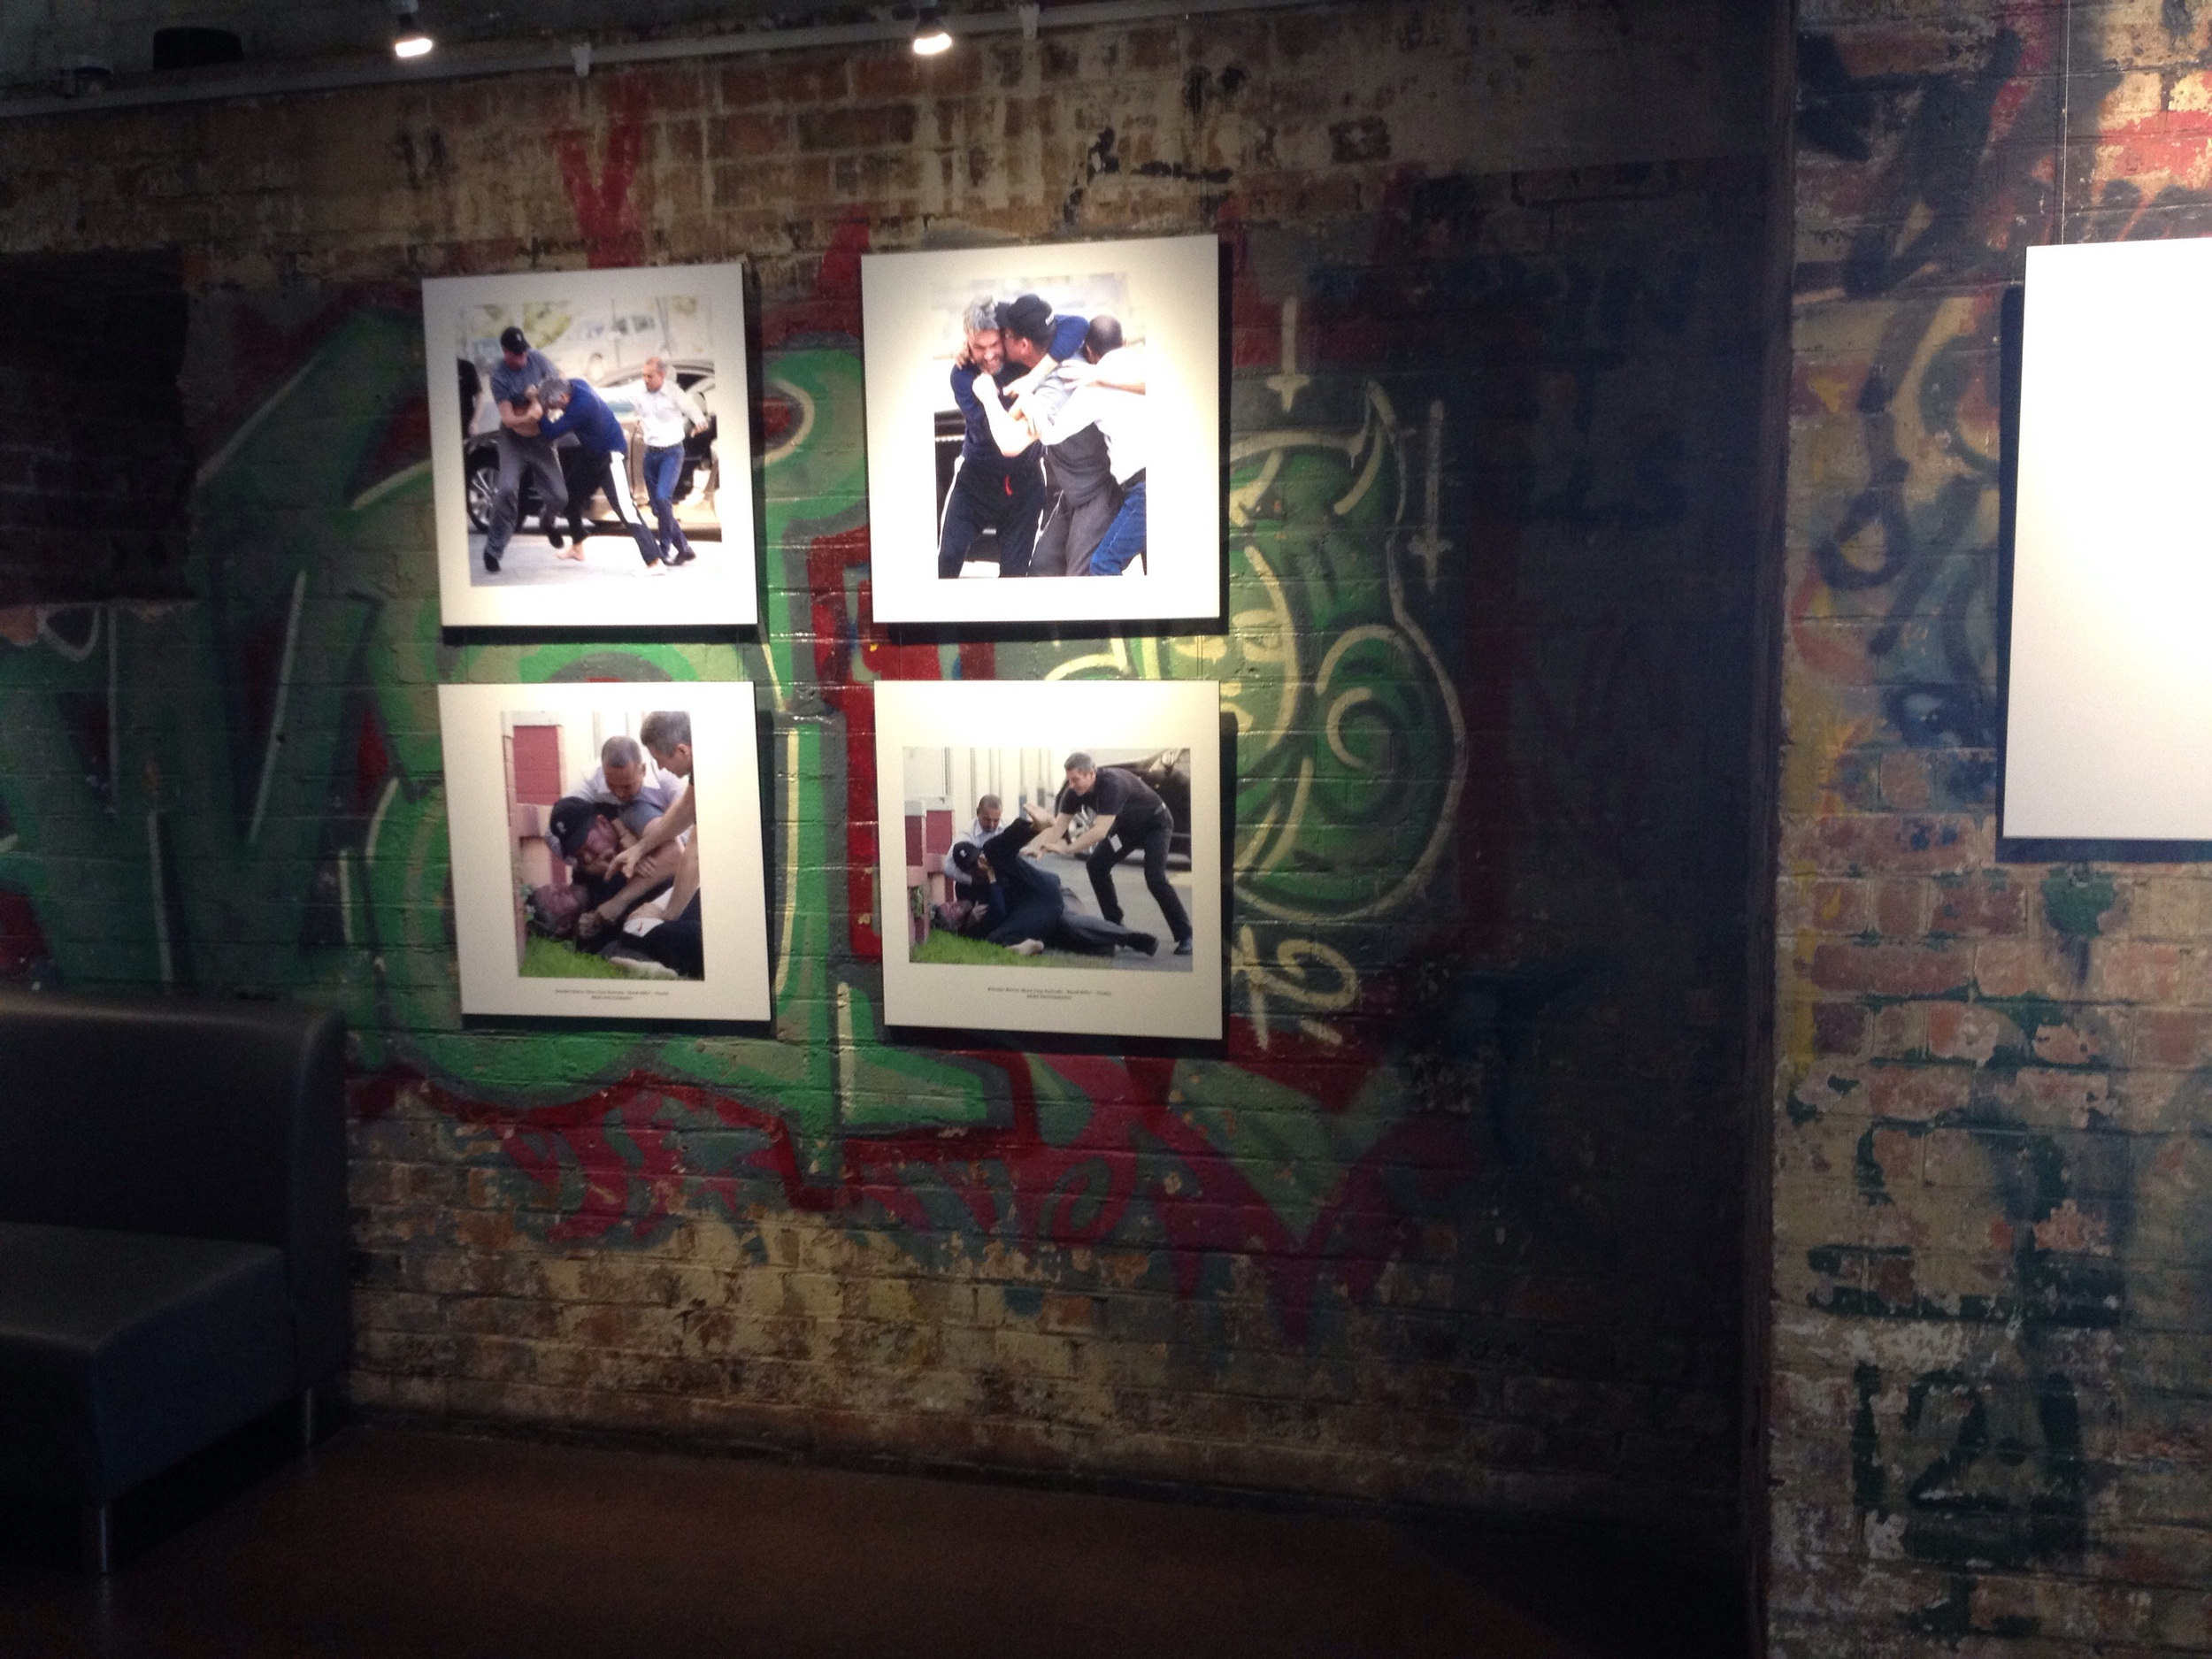 Graffiti covered walls and a photography exhibit